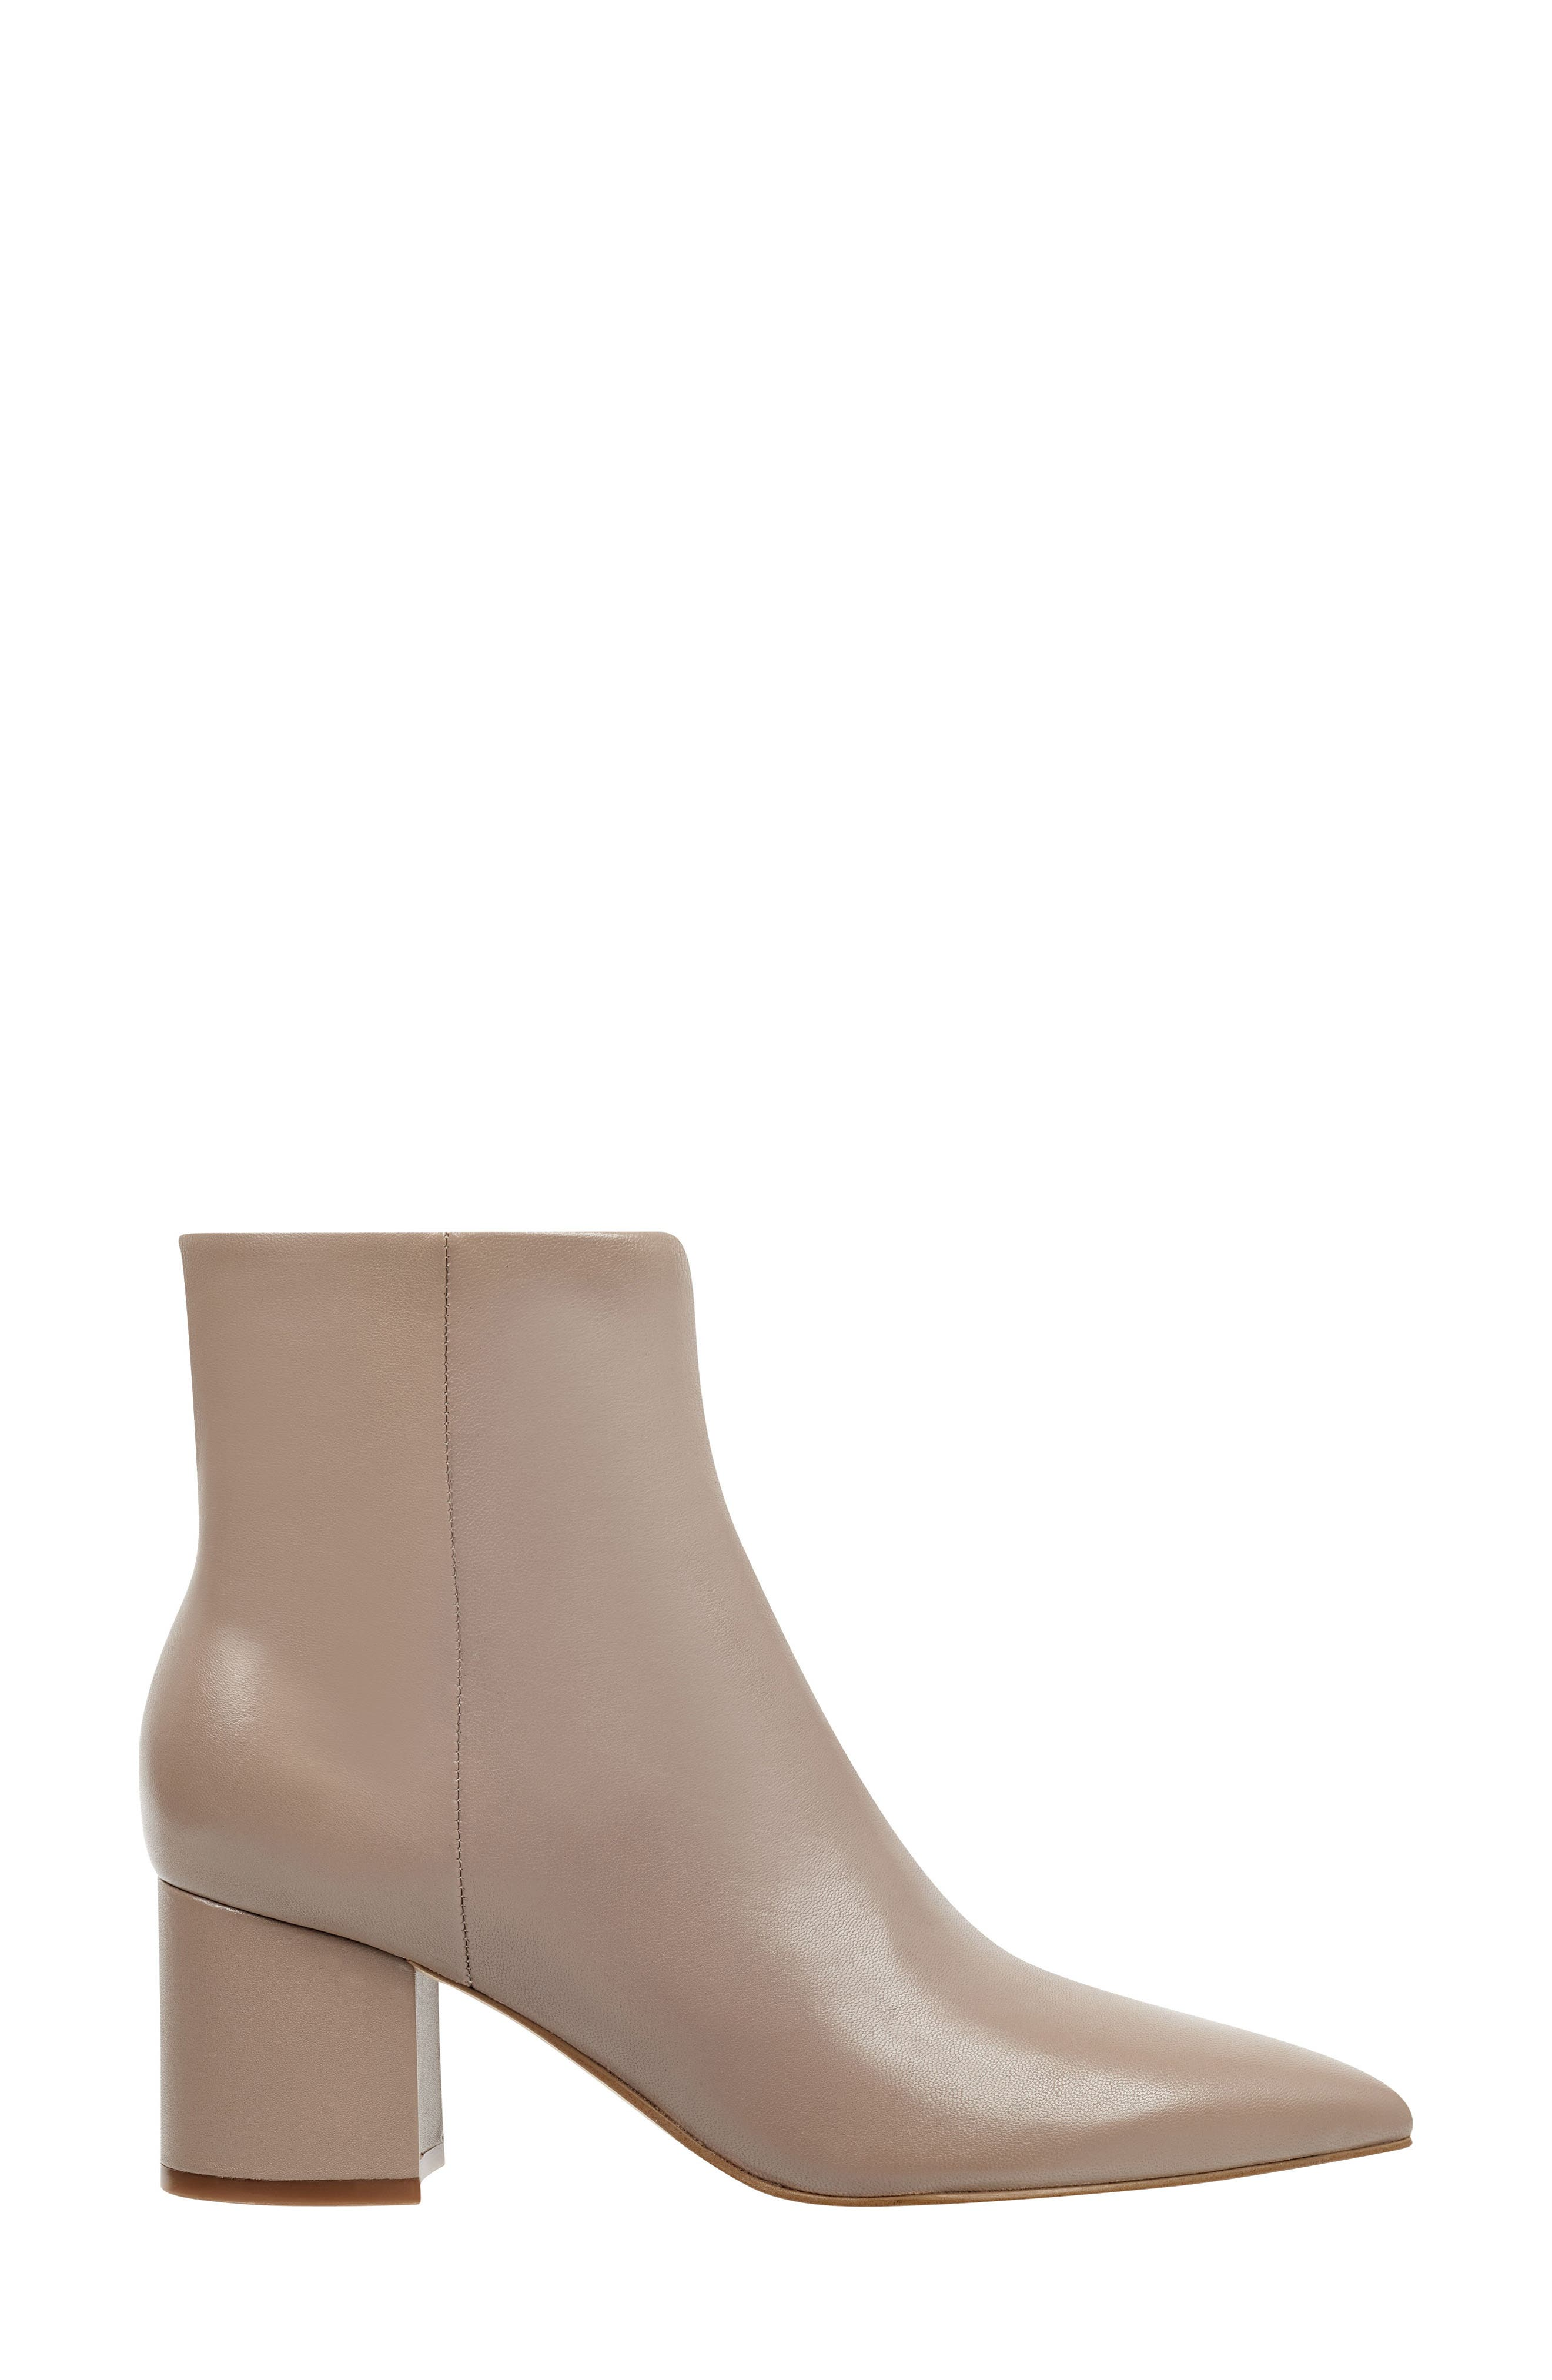 MARC FISHER LTD, Jarli Bootie, Alternate thumbnail 3, color, TAUPE LEATHER